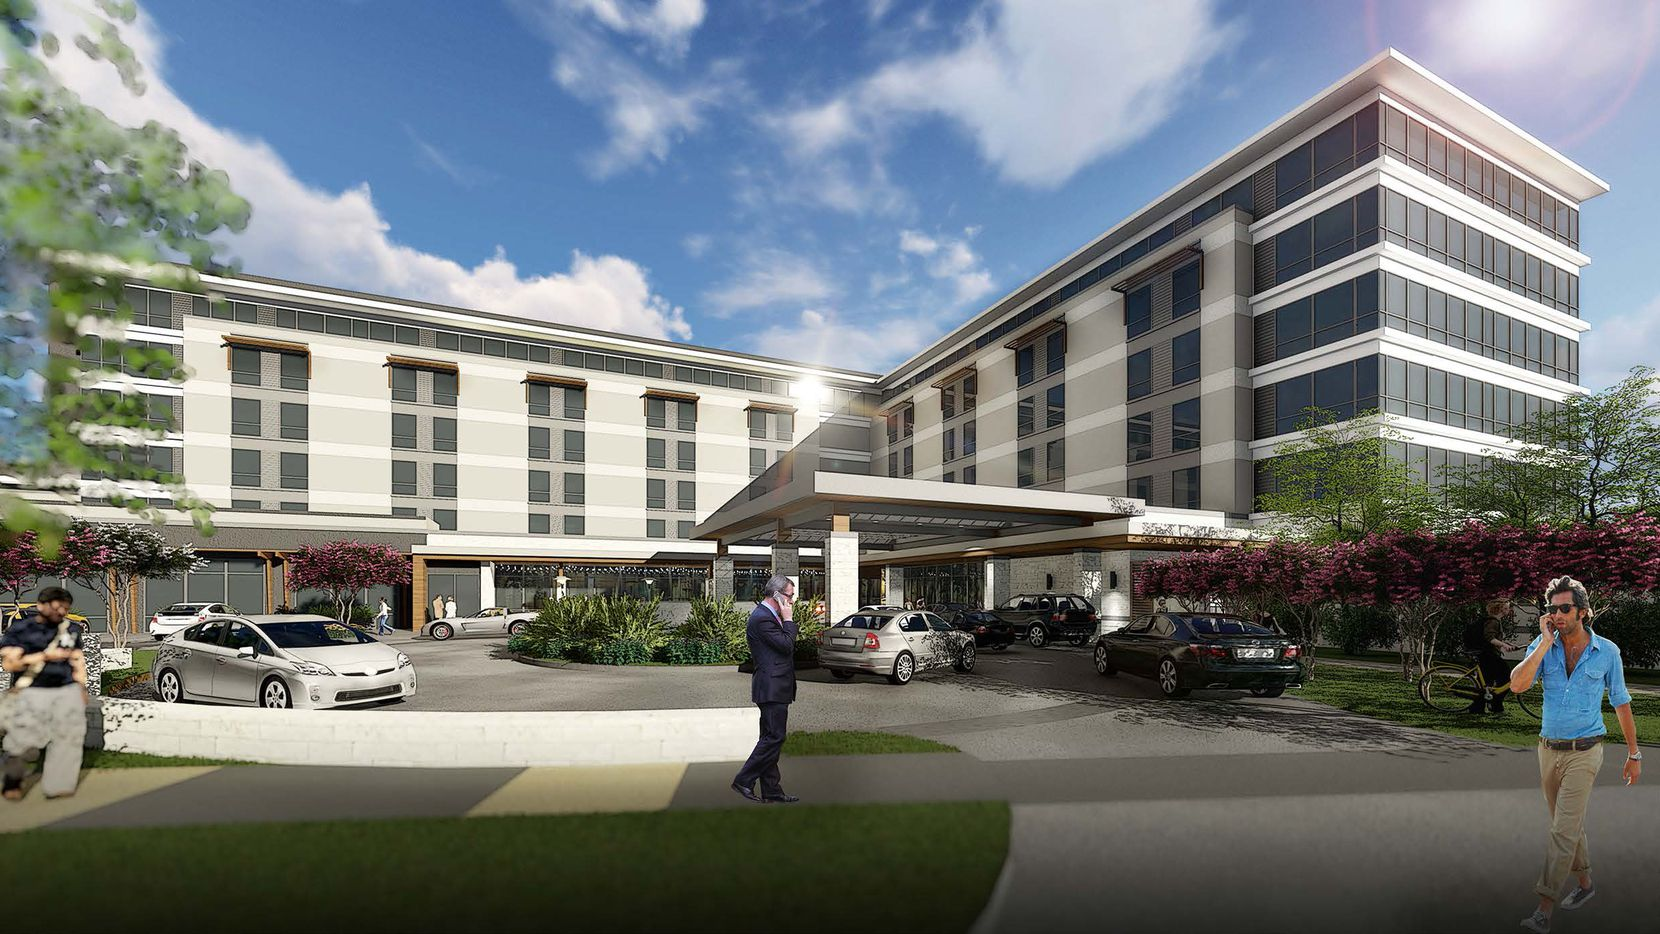 The 240-room Marriott Delta Southlake hotel will open next year.